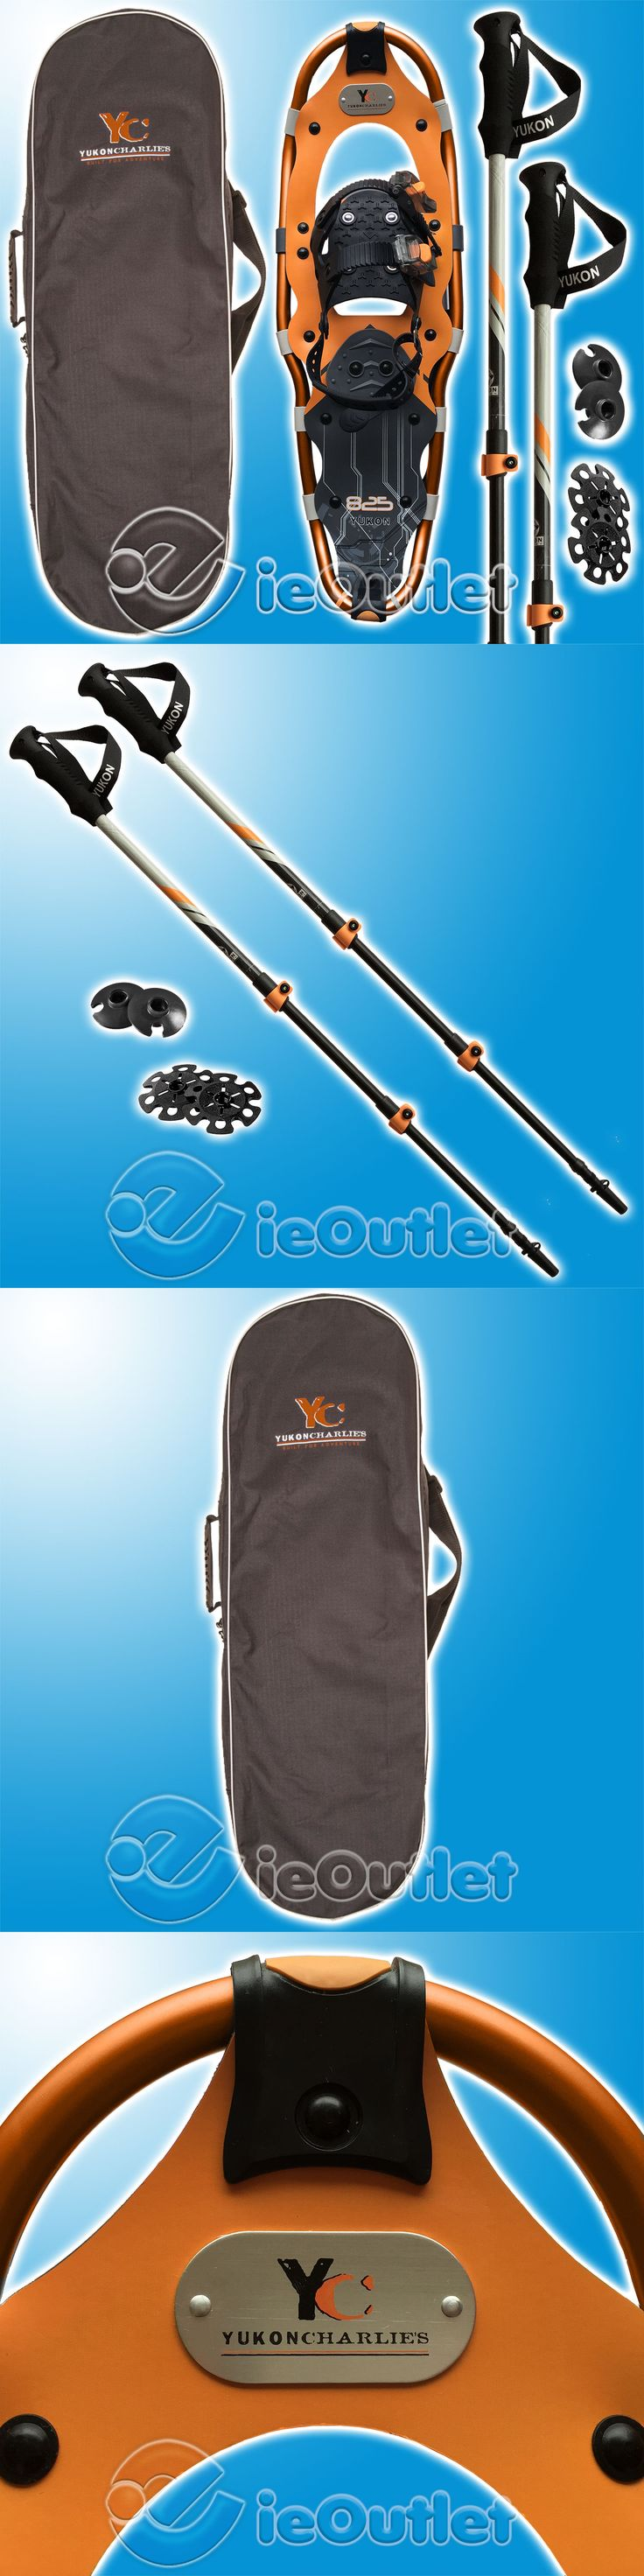 Snowshoeing 58136: New Yukon Charlie S 8 X 25 825 Snowshoe Kit W Hiking Poles And Carry Bag - Orange -> BUY IT NOW ONLY: $84.96 on eBay!